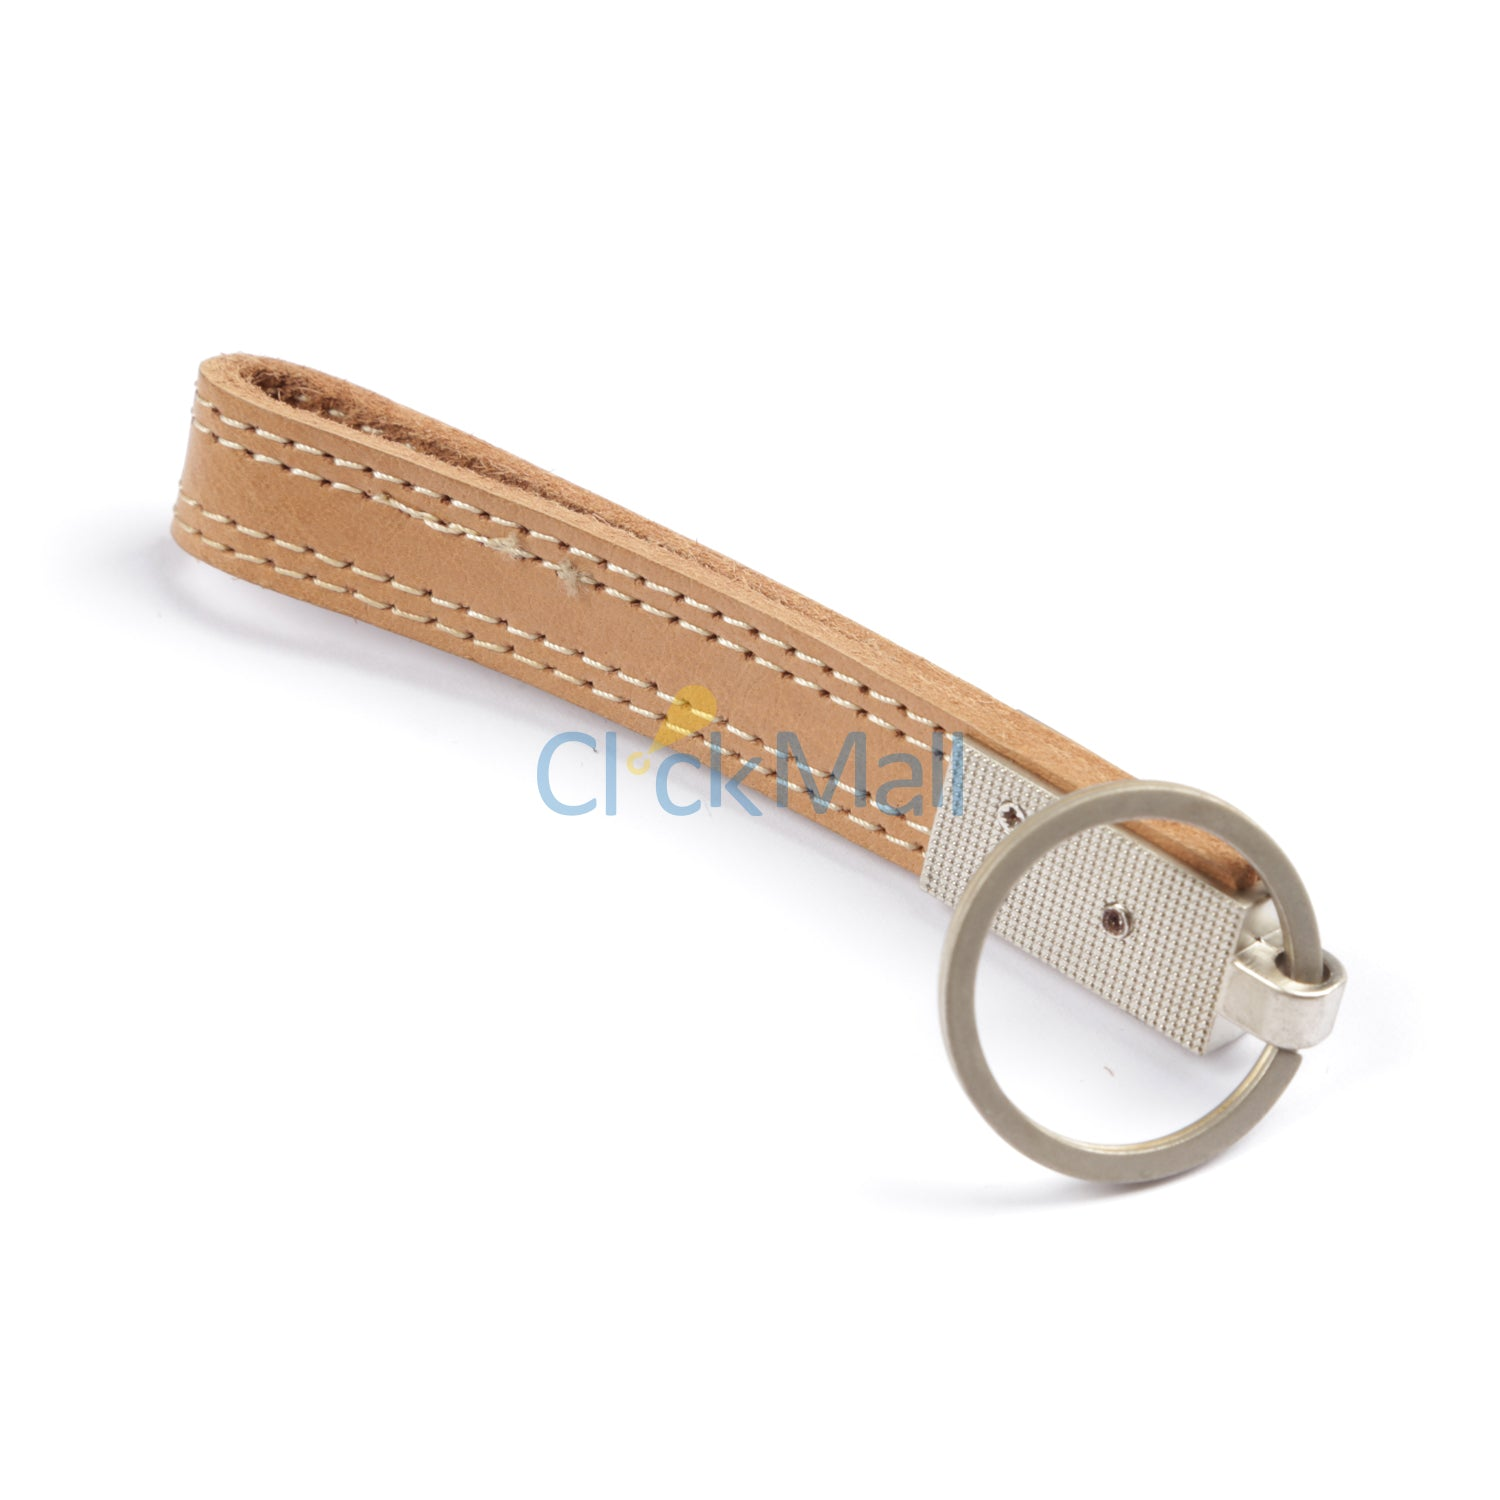 Sheikh Leather Leather Key Chain SLC-Oval-BL